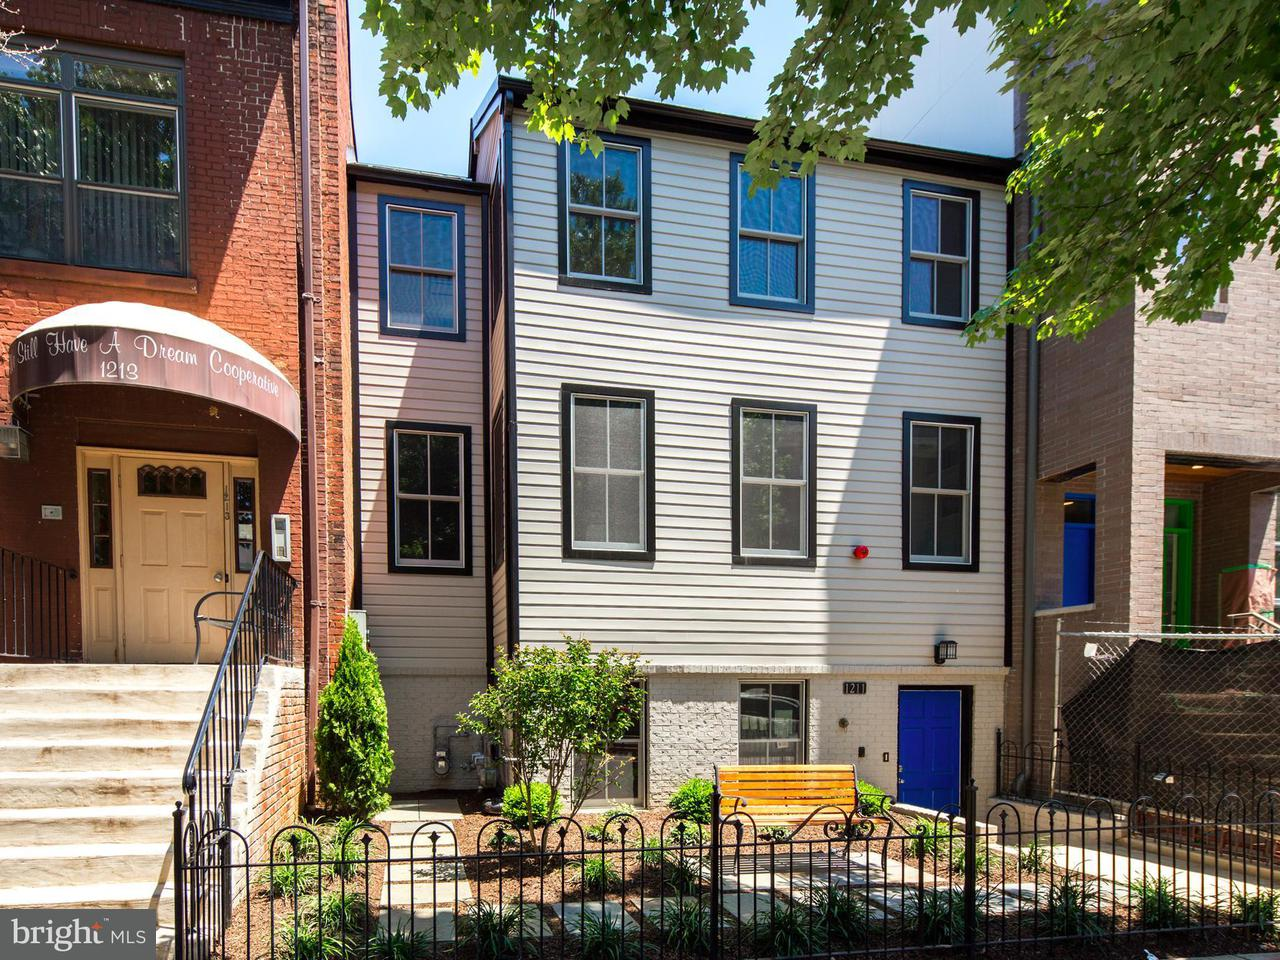 Condominium for Sale at 1211 10th St Nw #2 1211 10th St Nw #2 Washington, District Of Columbia 20001 United States